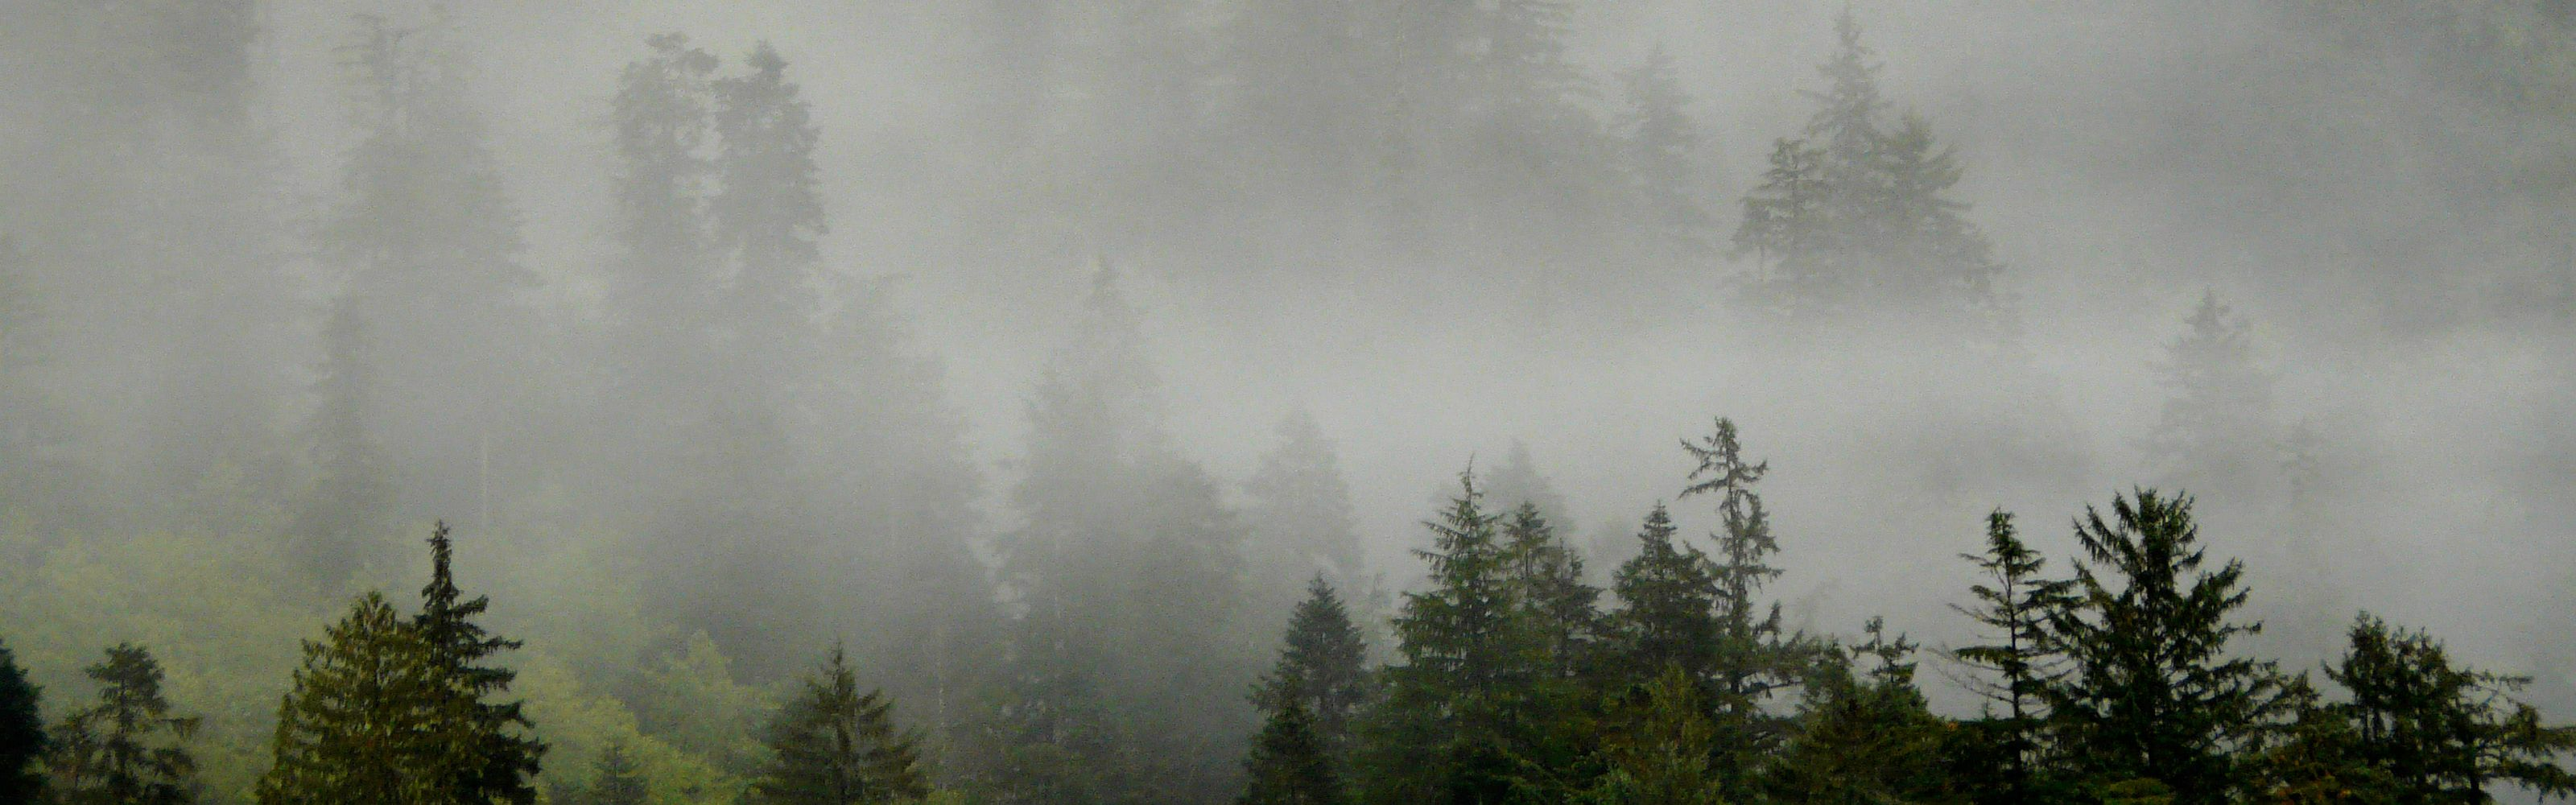 Fog and rain shrouds the Pacific coastline of the Great Bear Rainforest in Canada.